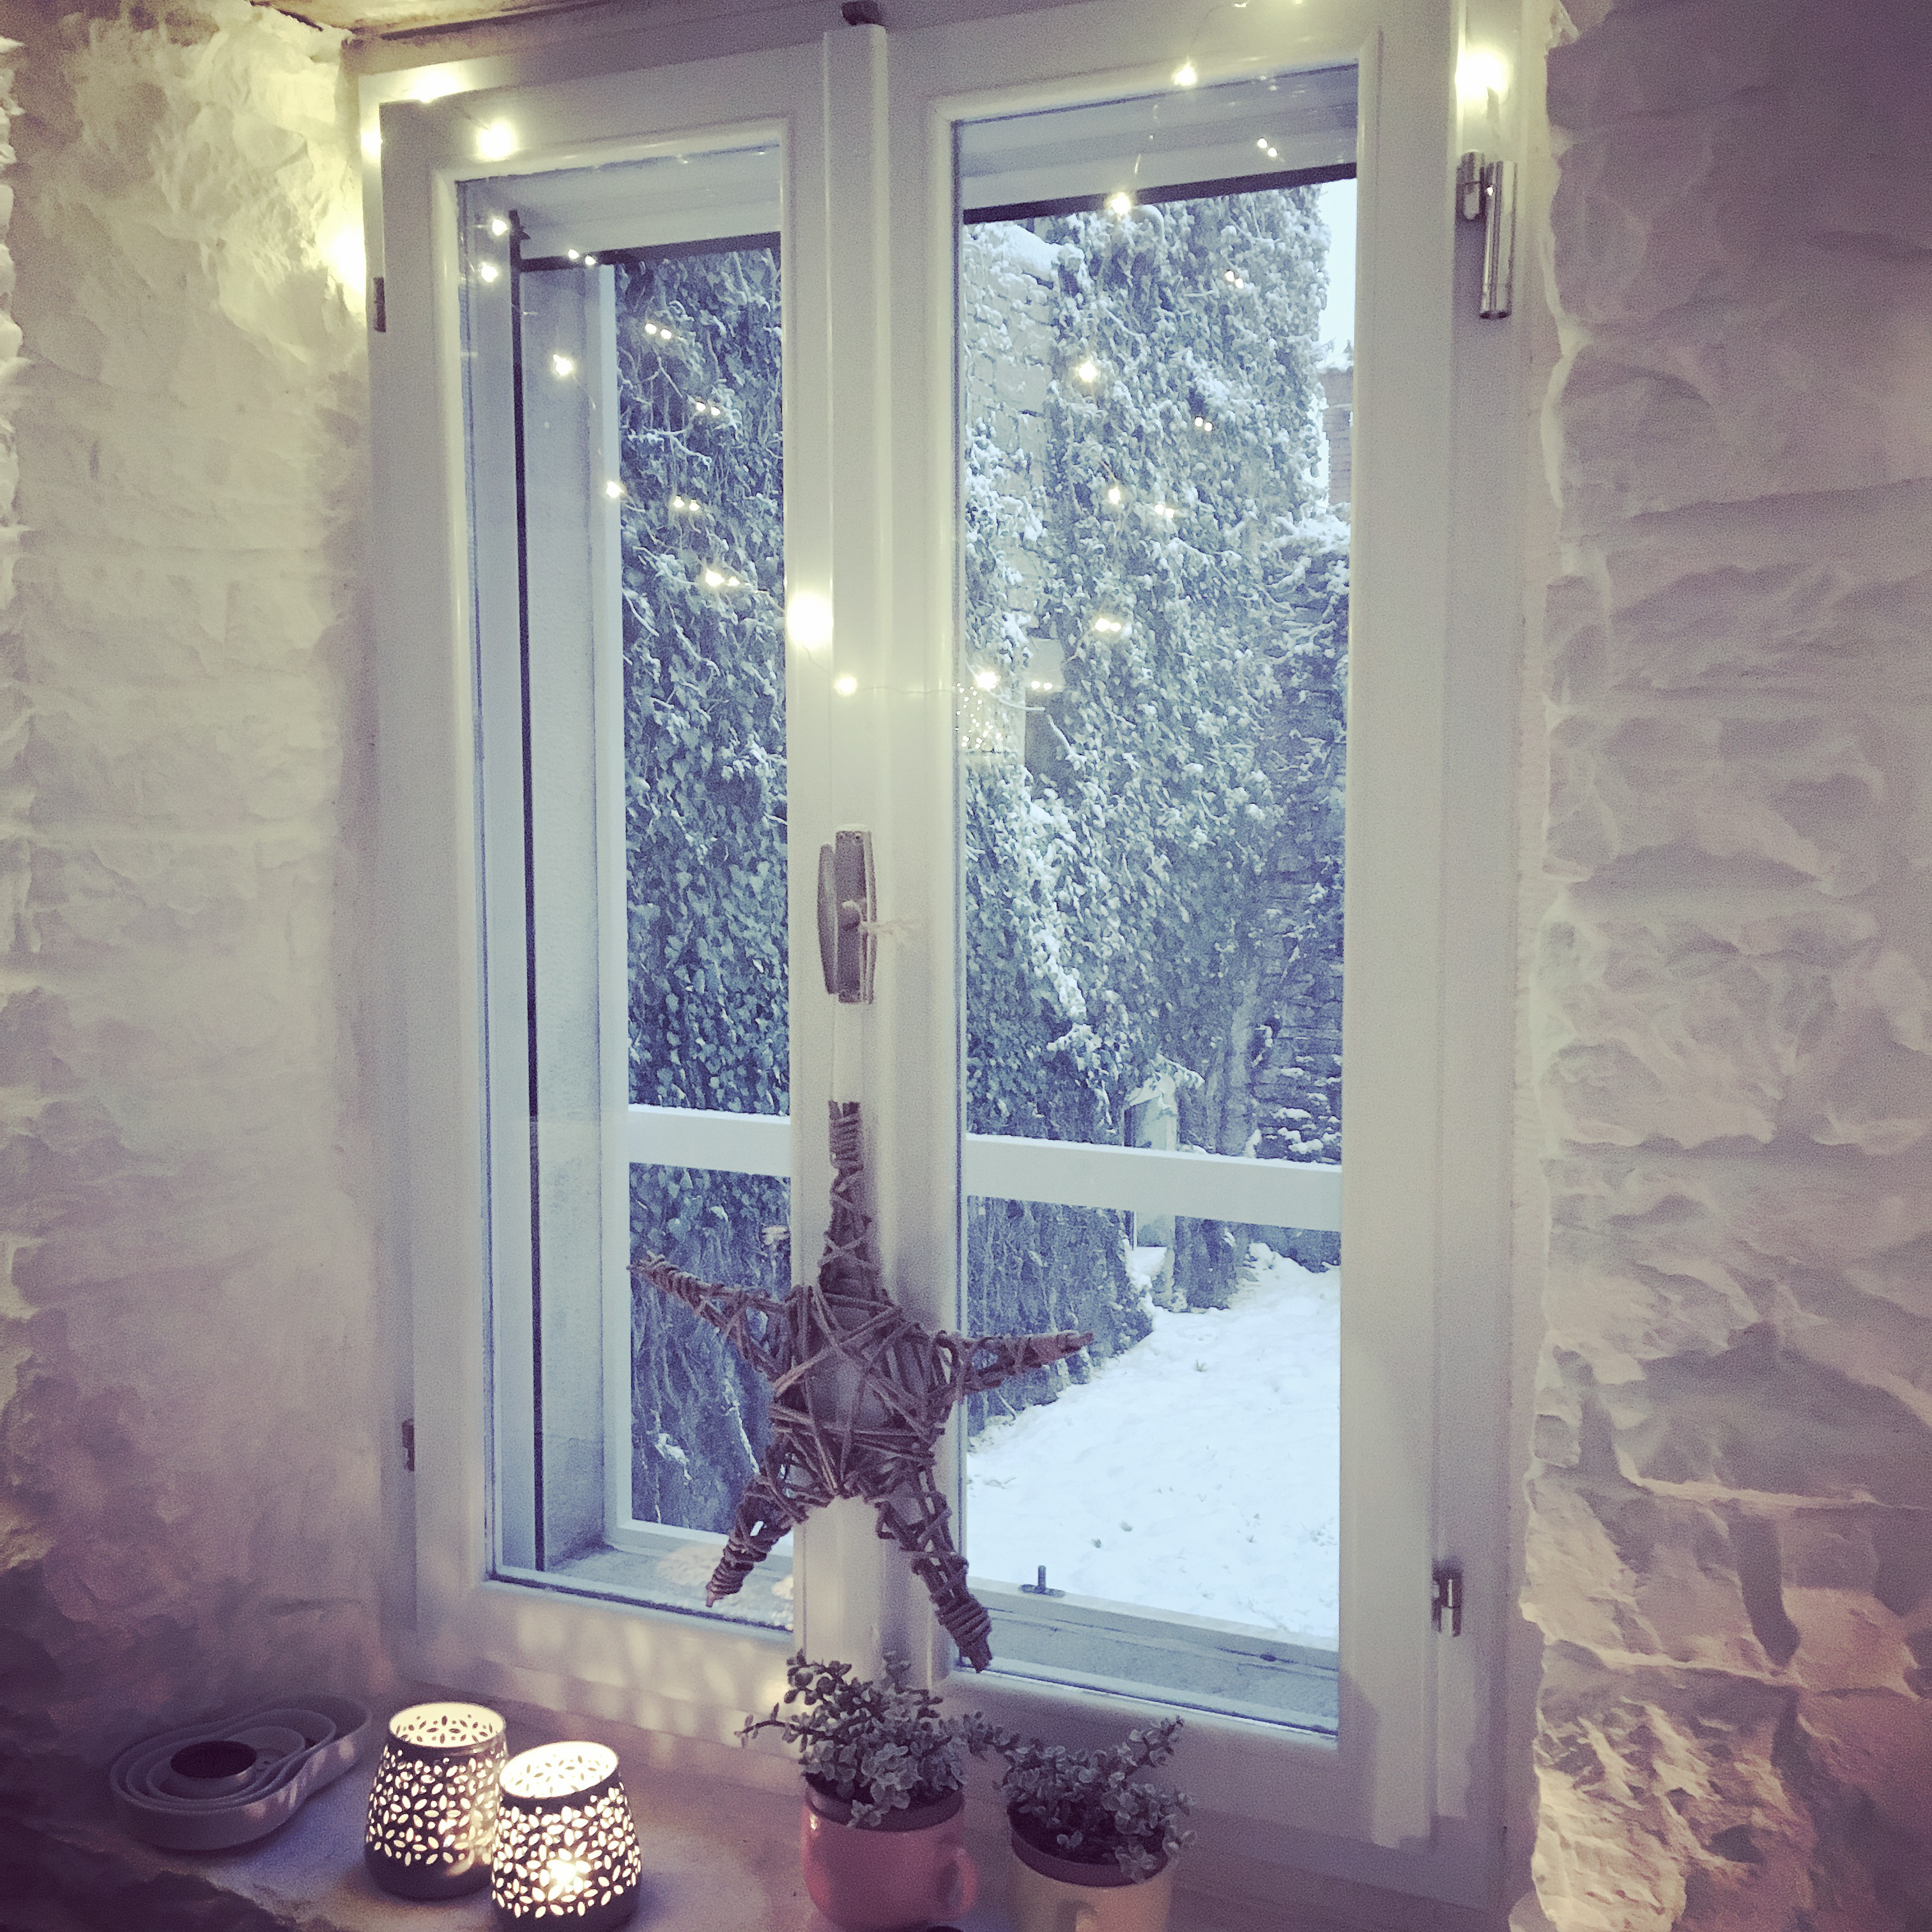 Warm & cosy in the house as the snow continues to fall.